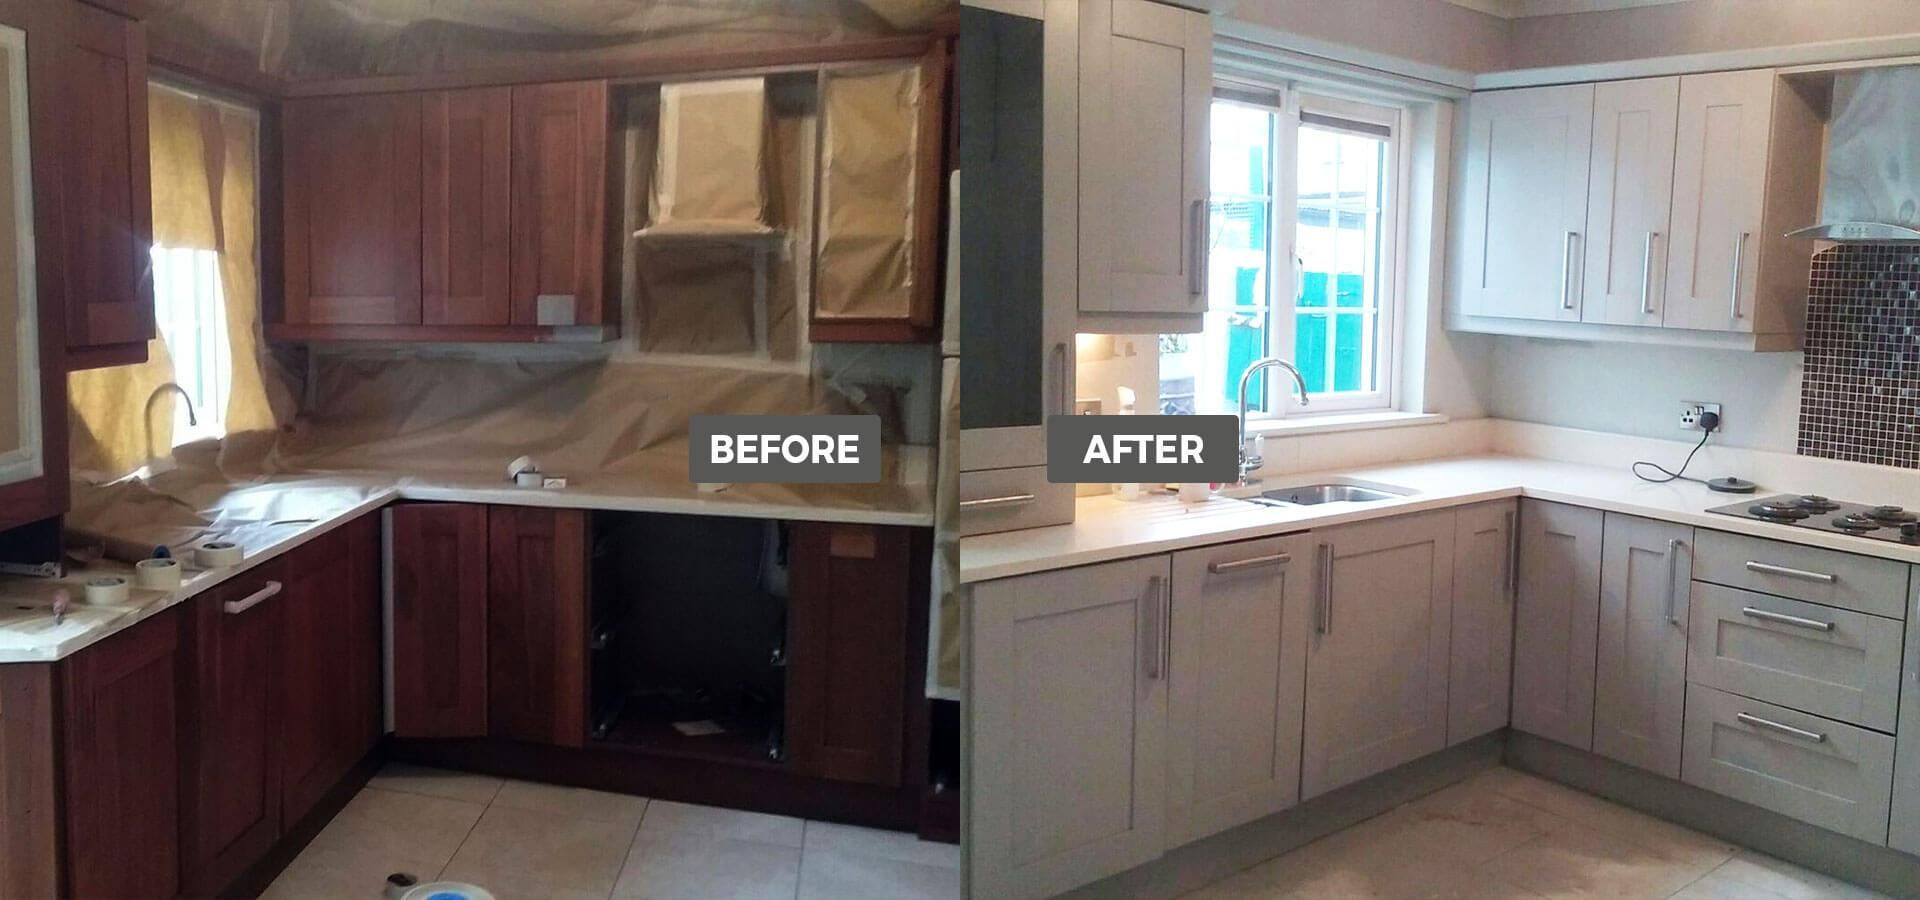 Fitted Kitchens Dublin Ivory Shaker Respray Kitchens